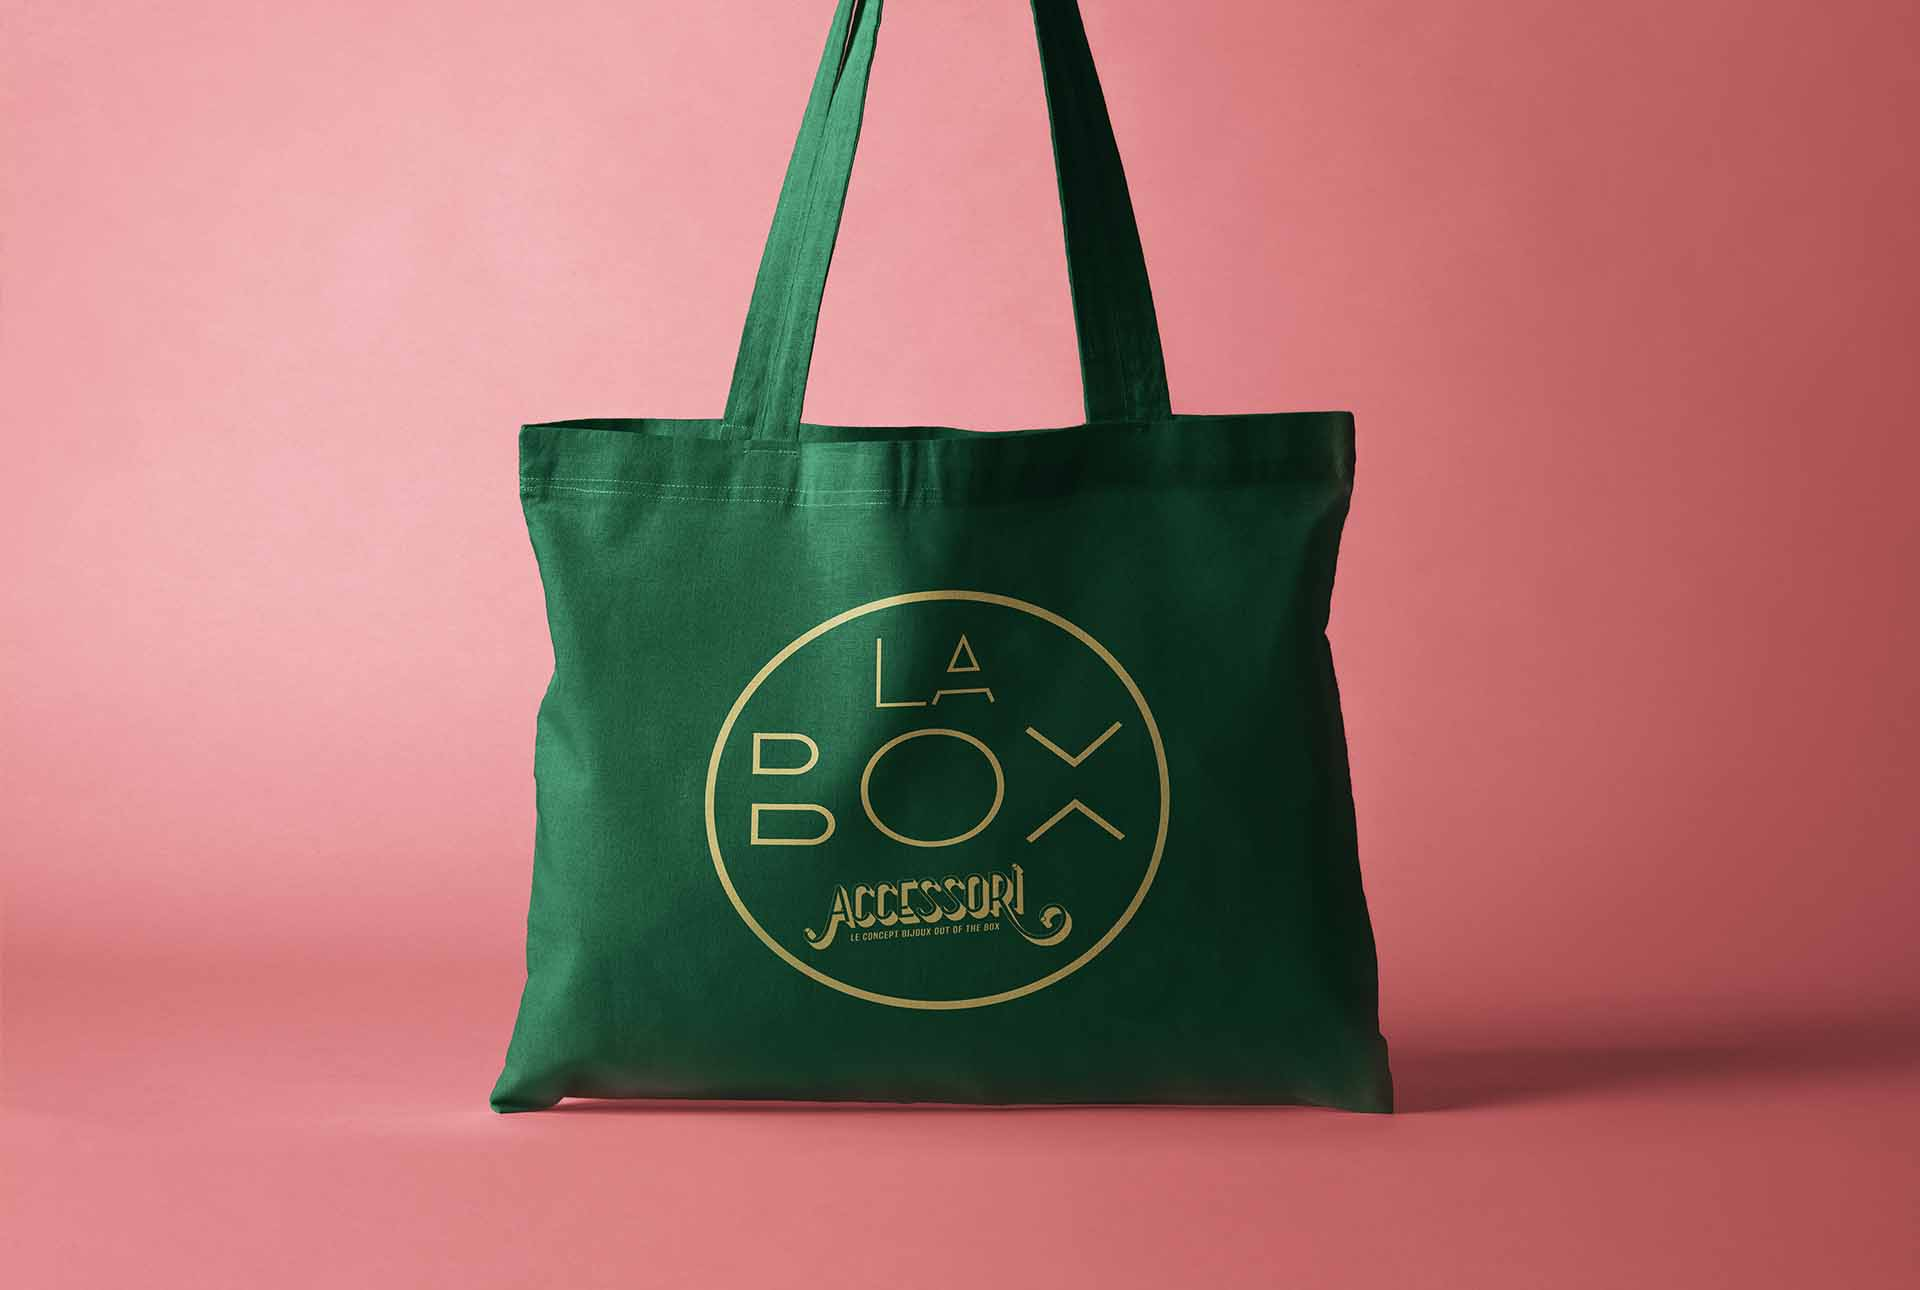 Accessori creation totebag mode beaute graphiste grenoble